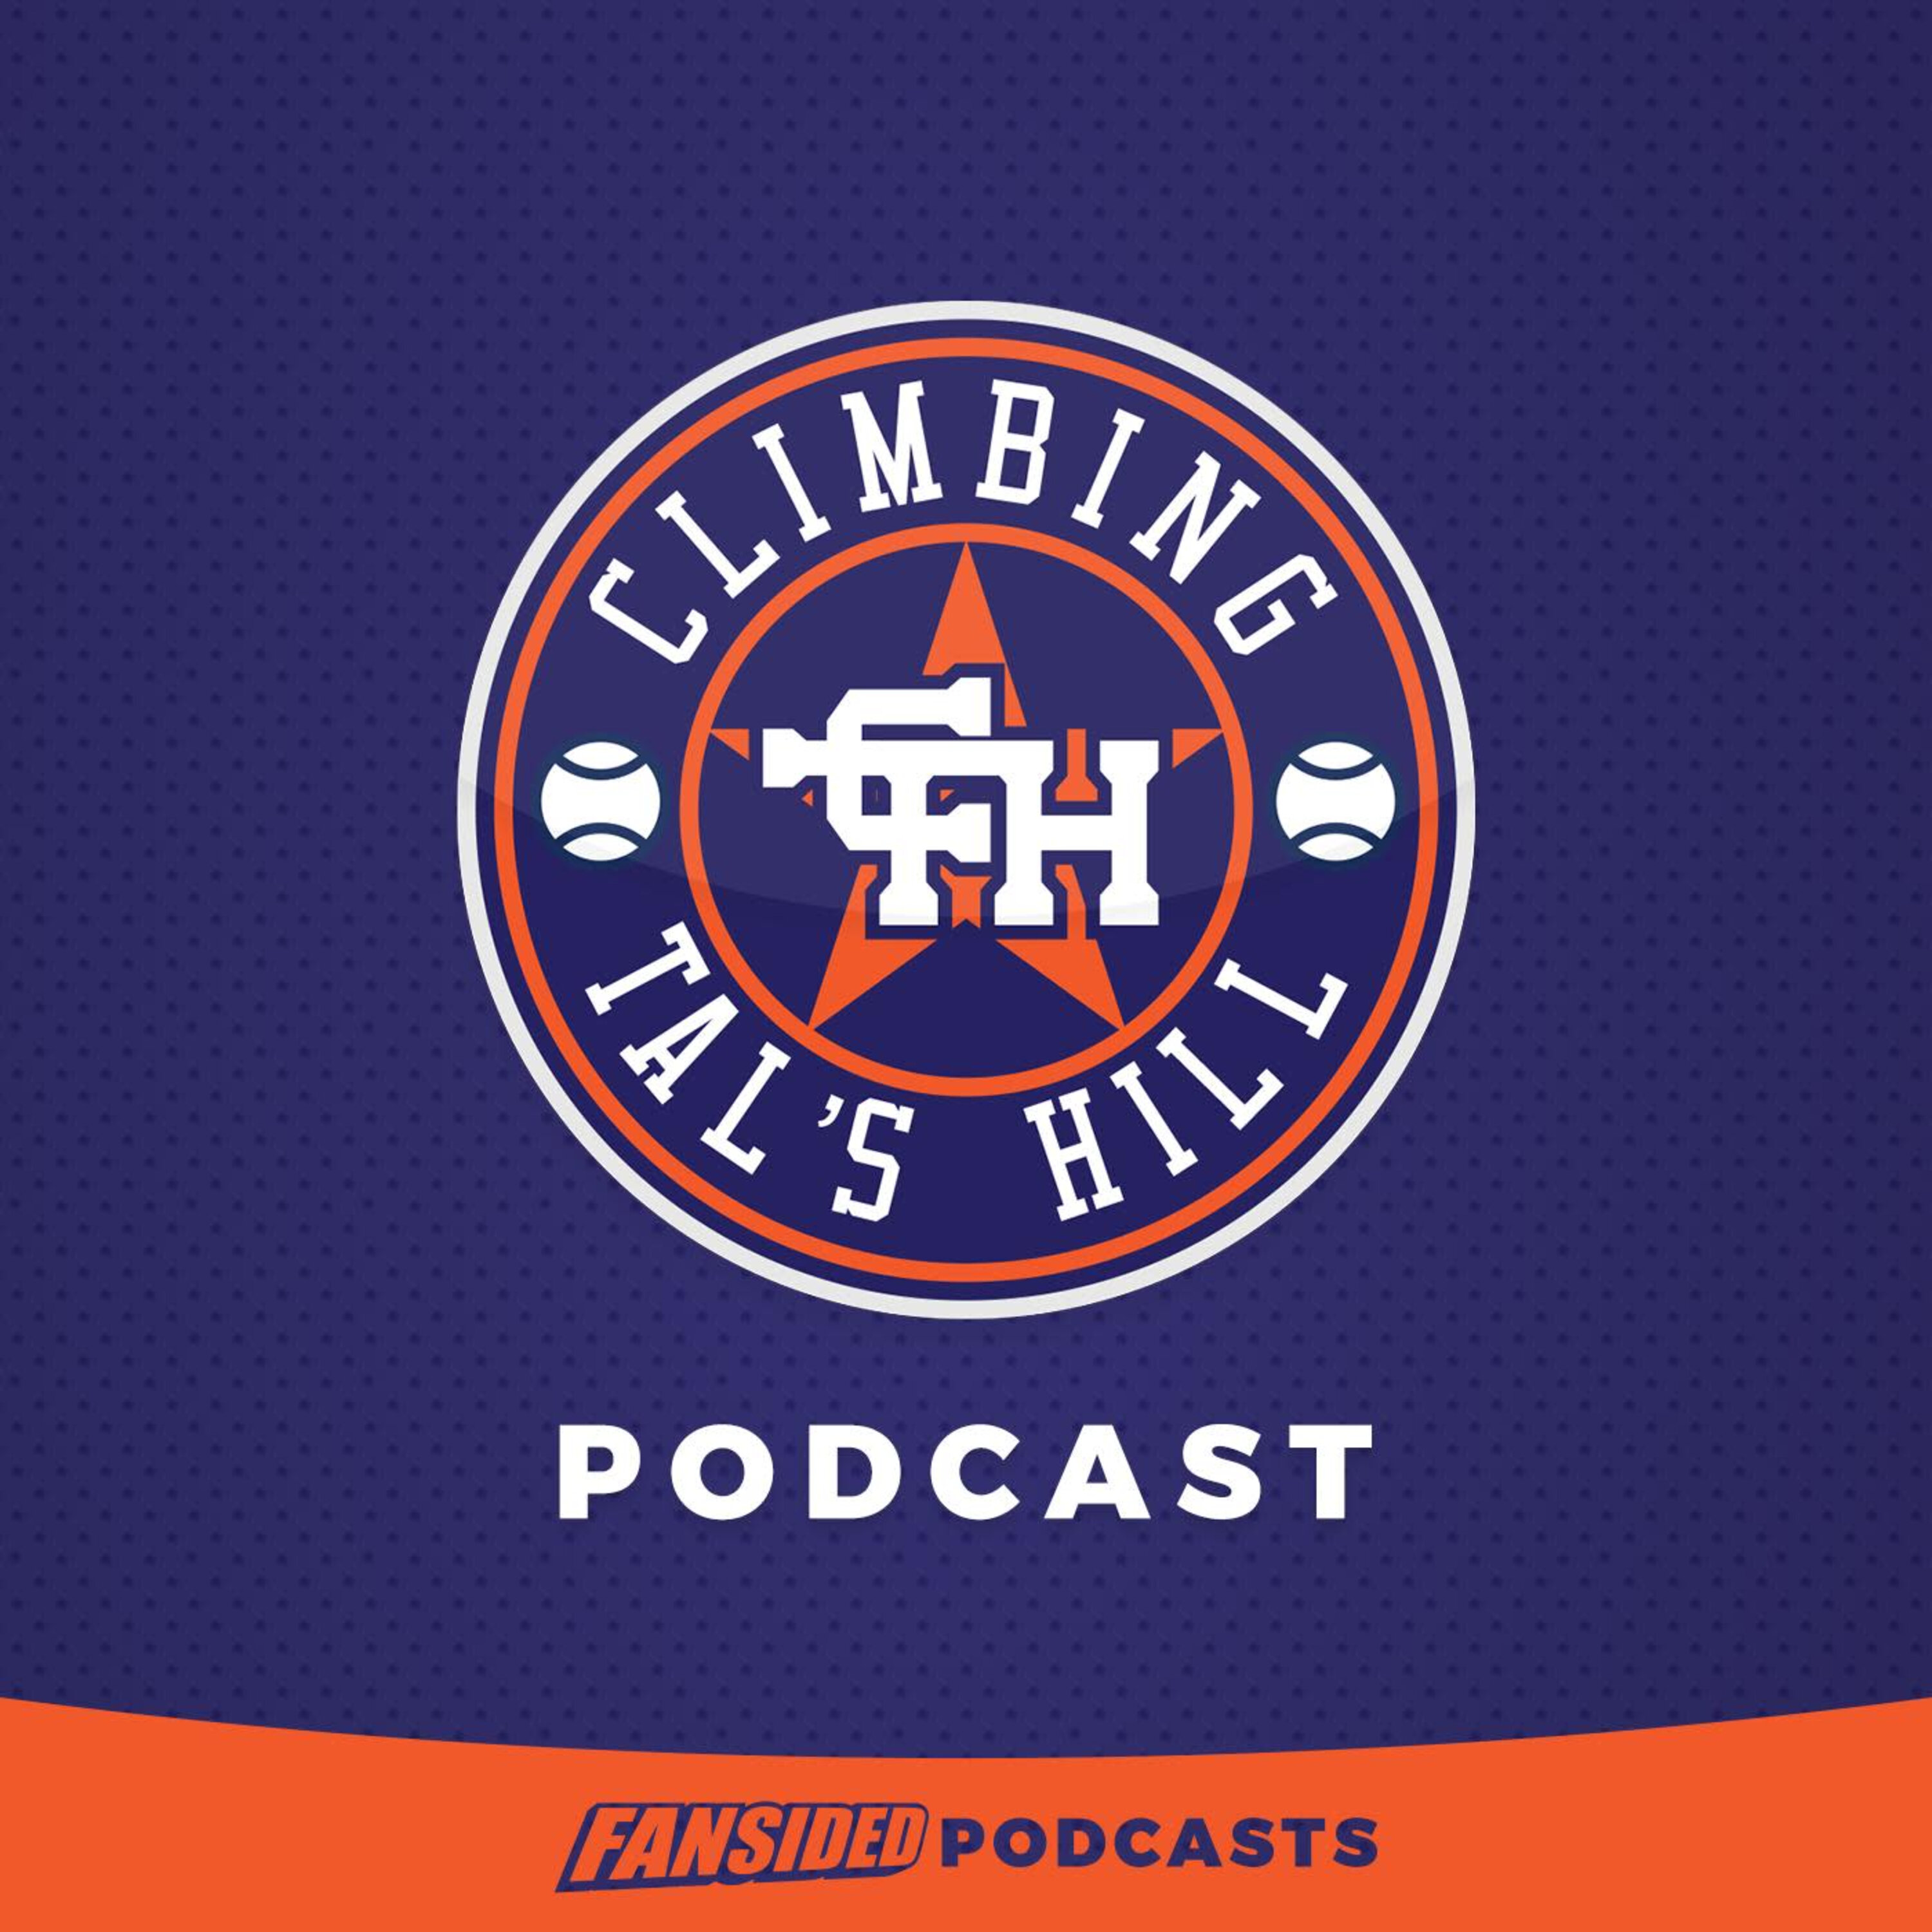 The Astros open the seasonn versus the Rangers in a winning fashion